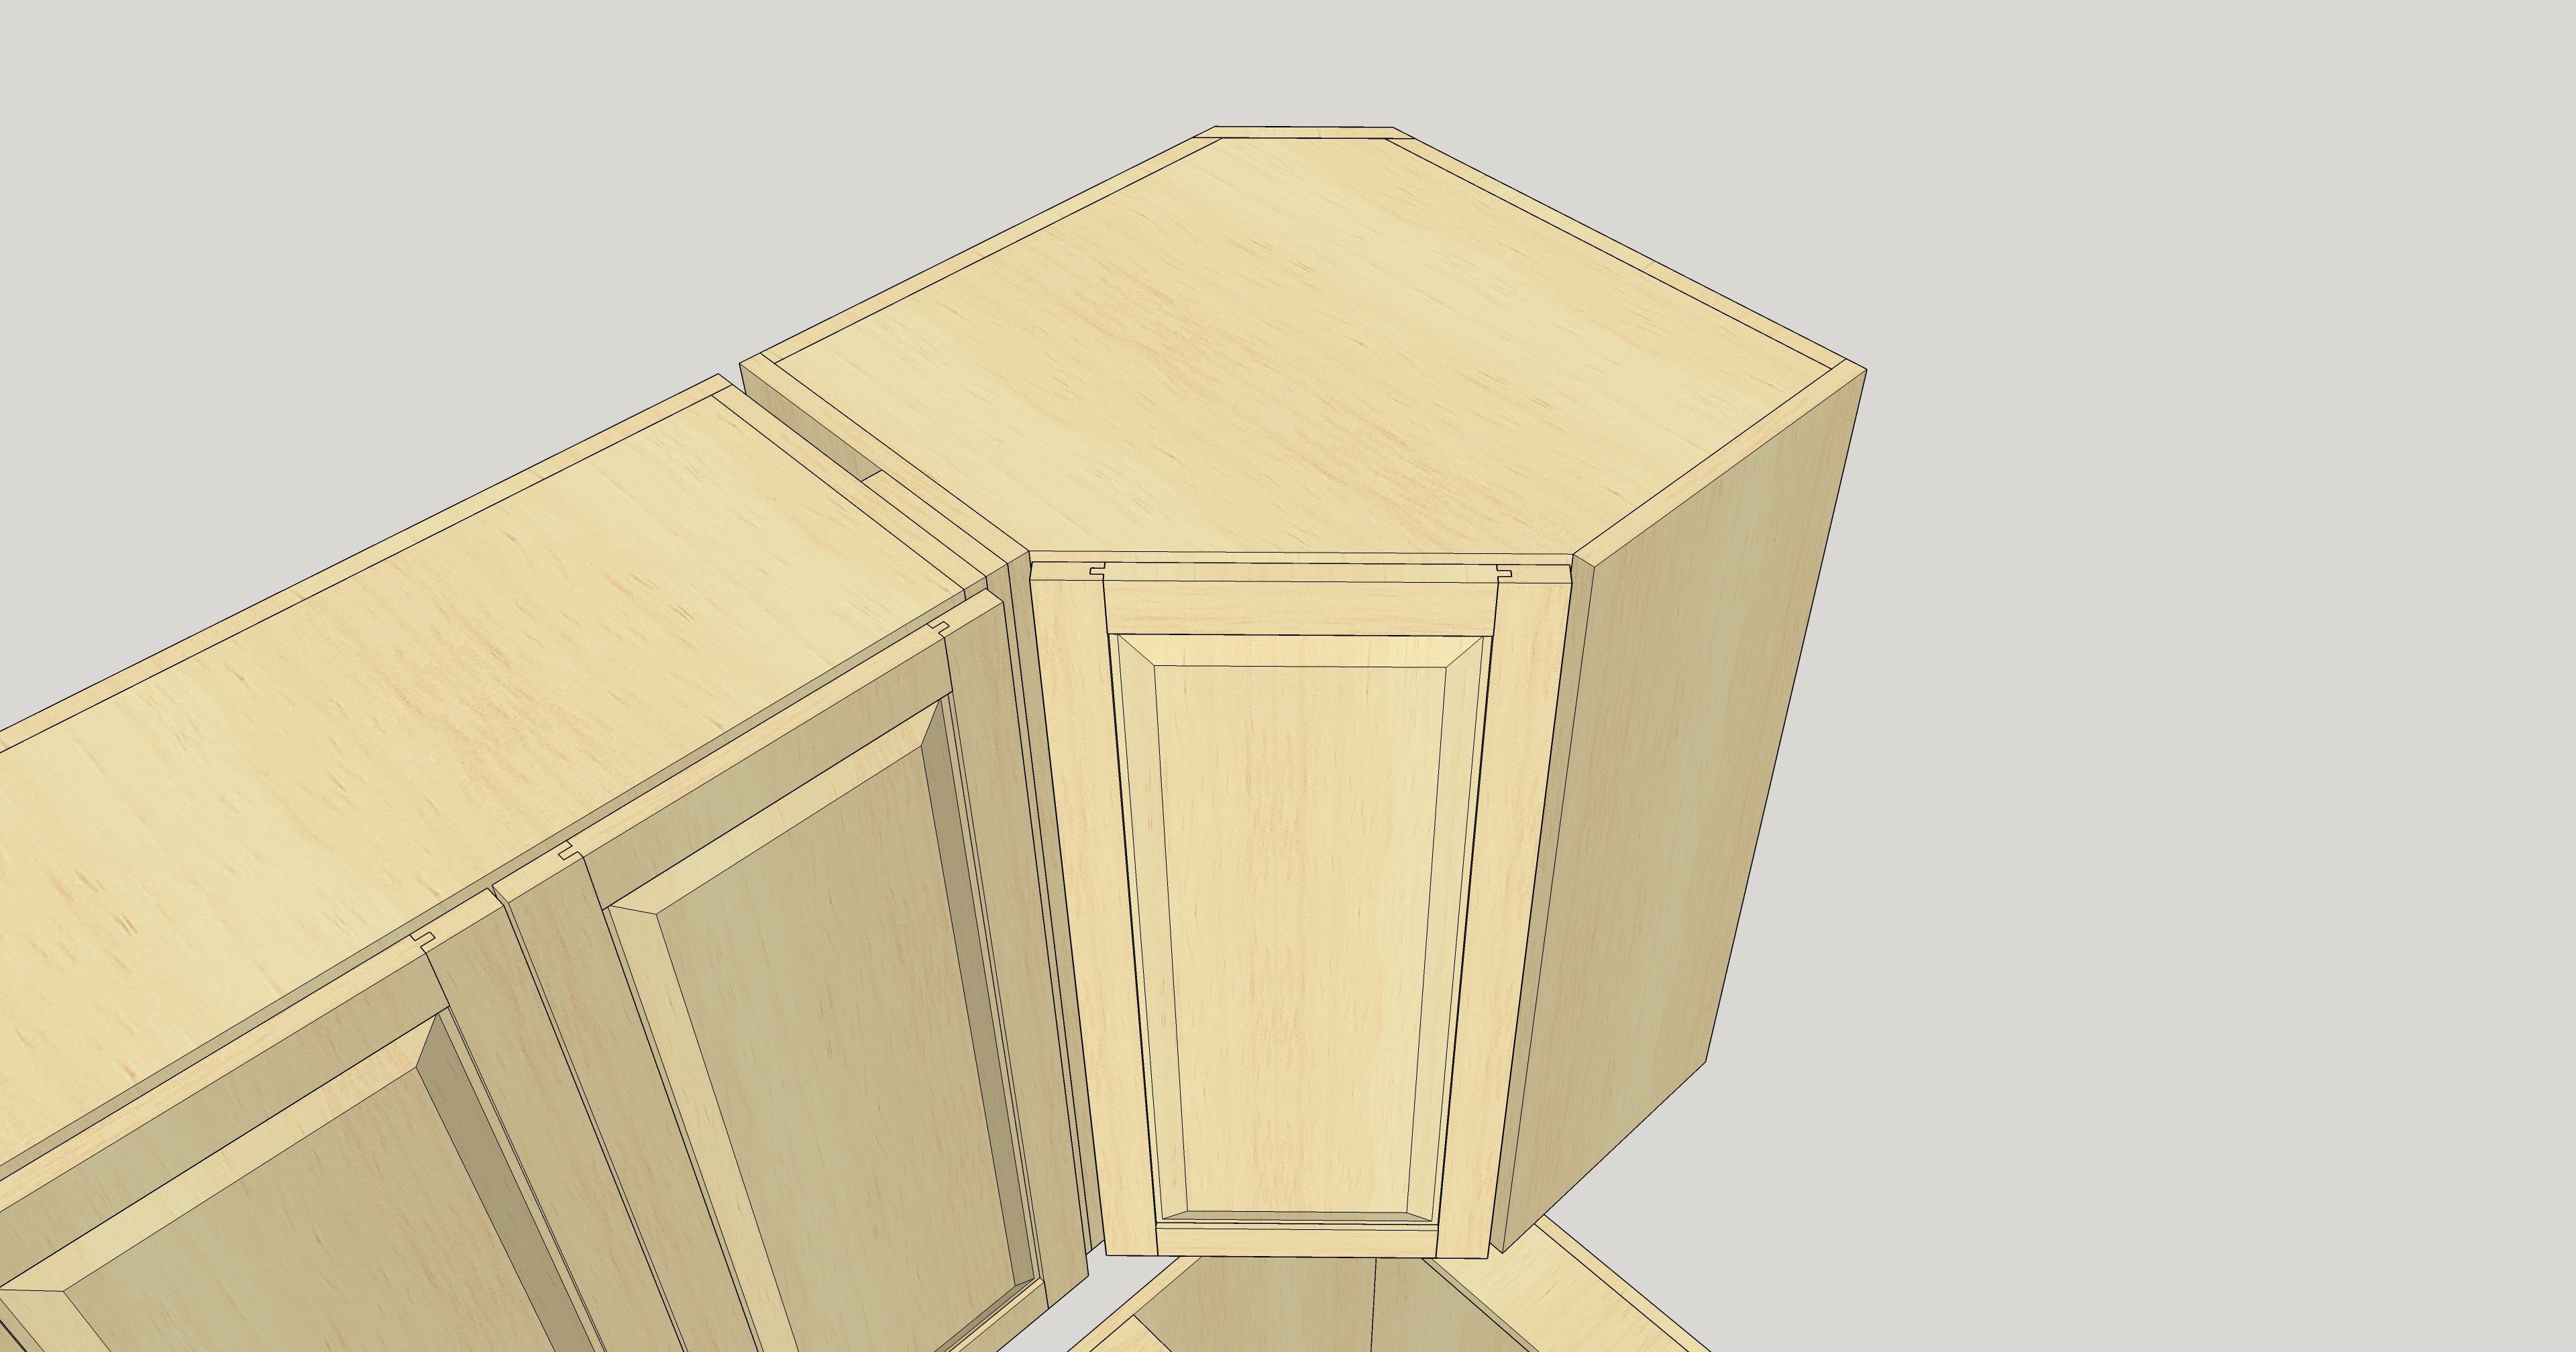 Upper corner kitchen cabinet dimensions - View Higher Quality Full Size Image 3840 X 2016